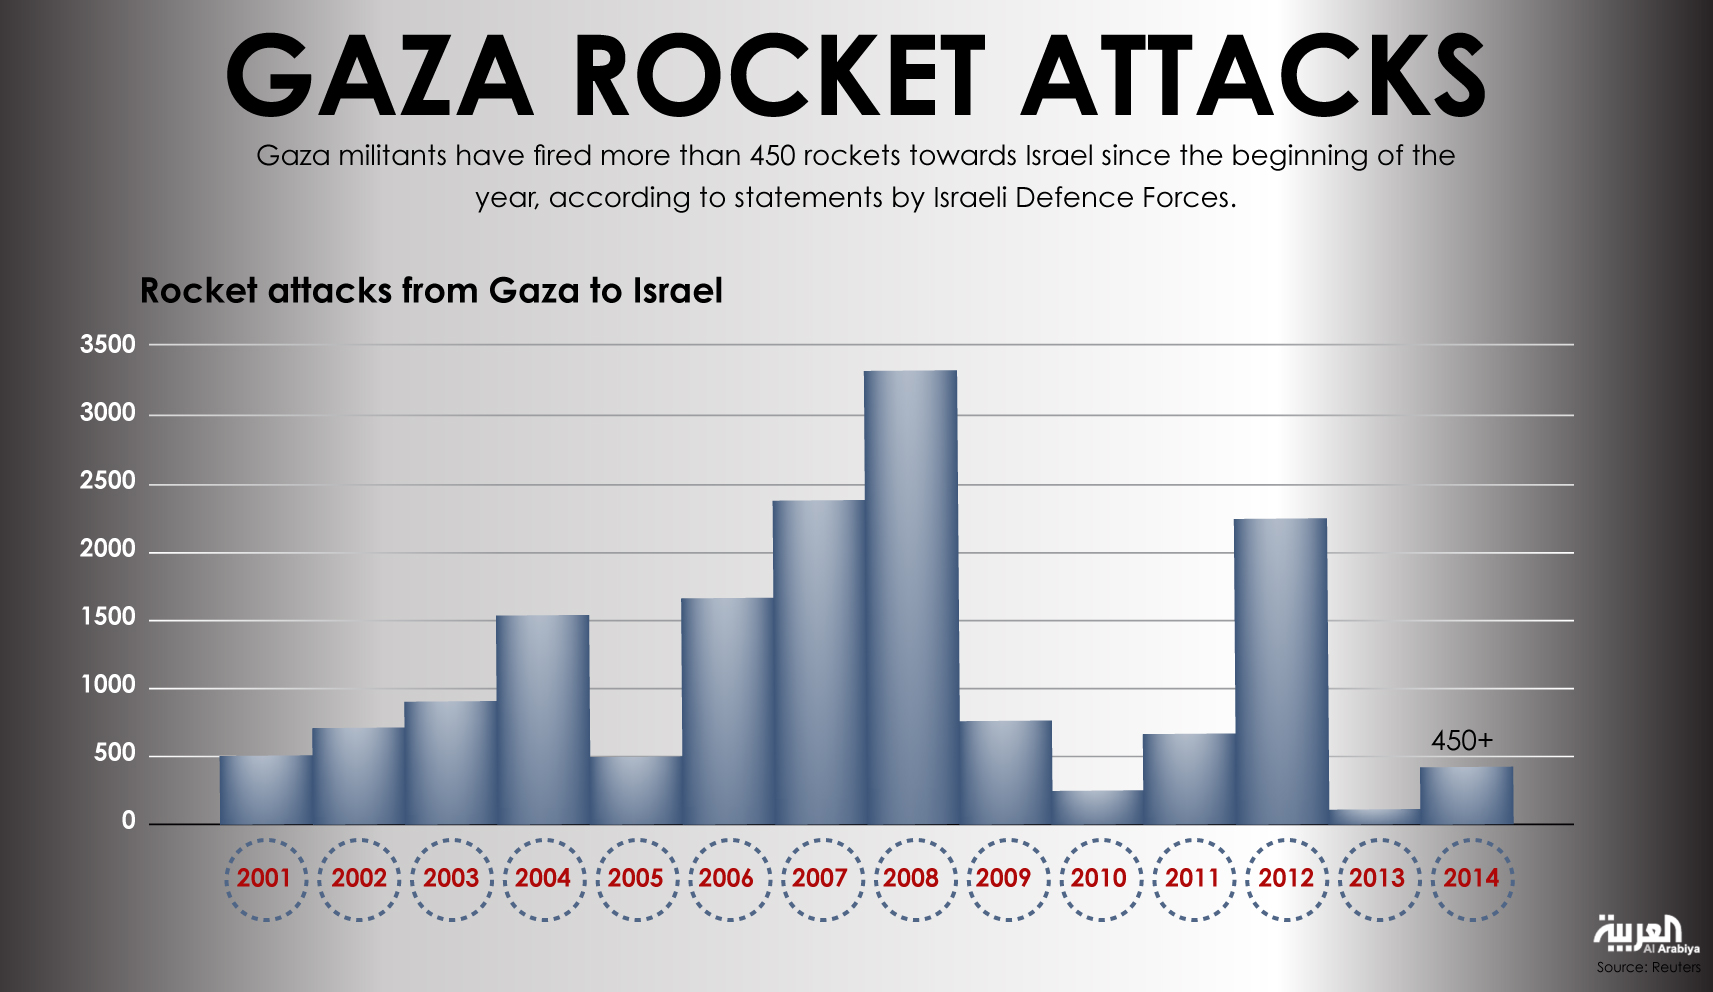 Infographic: Gaza rocket attacks